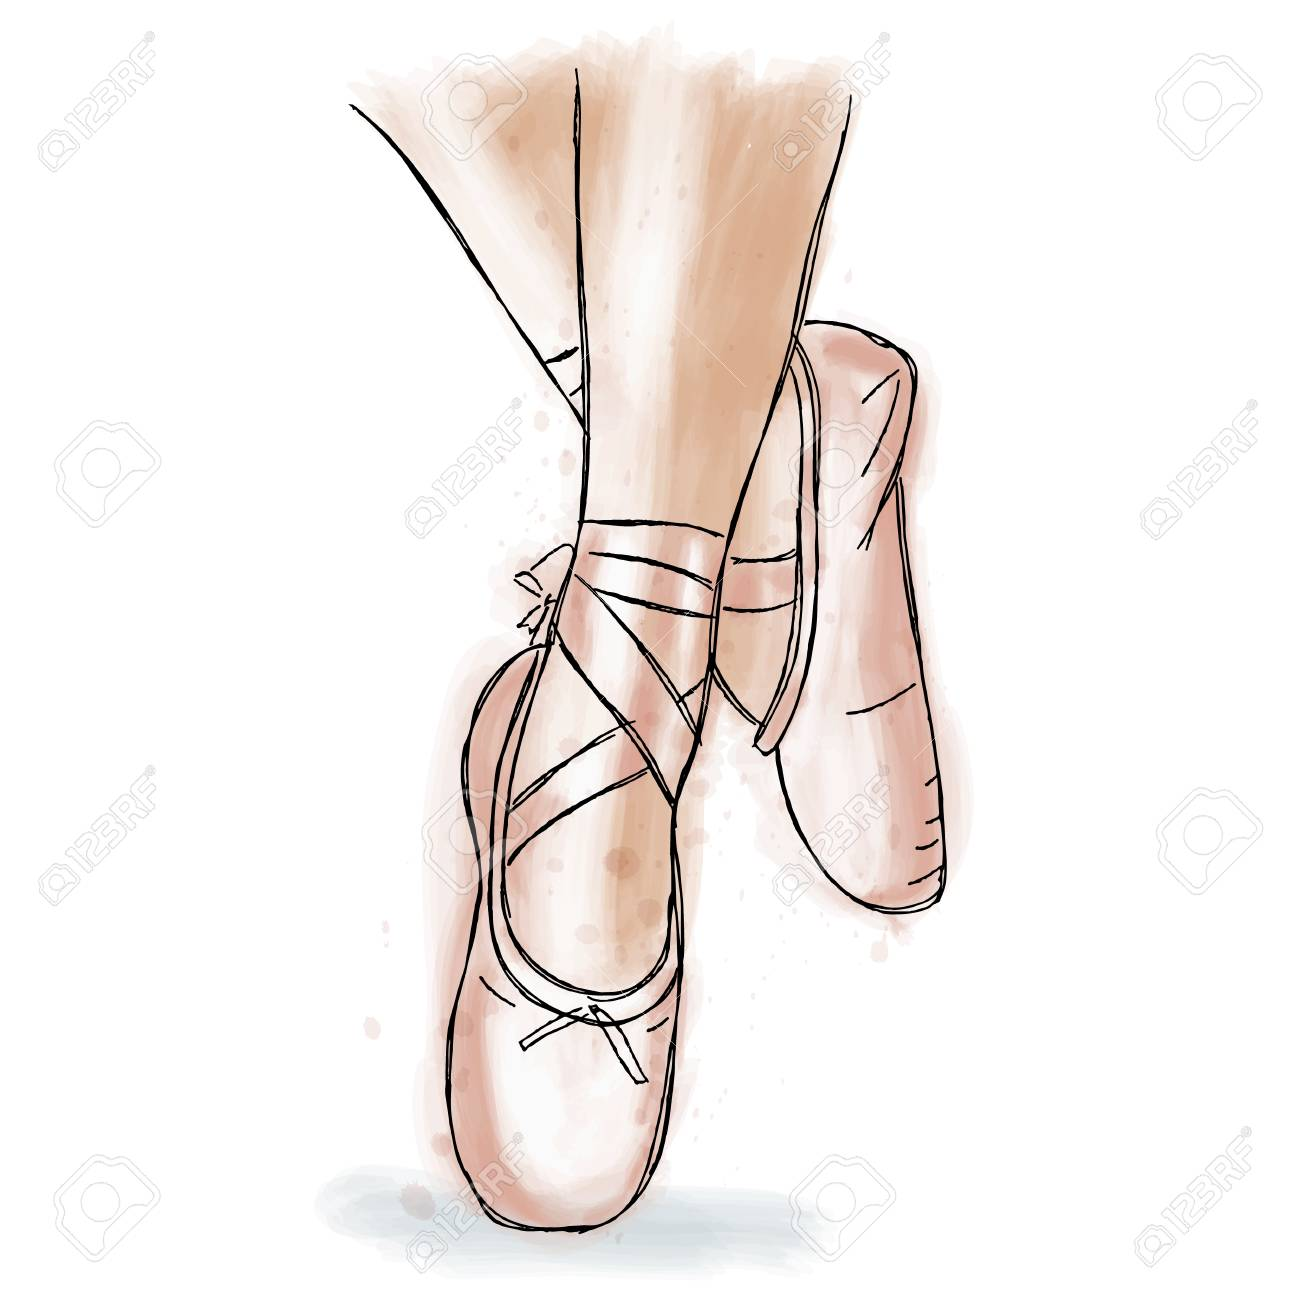 bdcddcf49ff2 Pink ballerina shoes. Ballet pointe shoes with ribbon. Hand drawn art work  isolated on